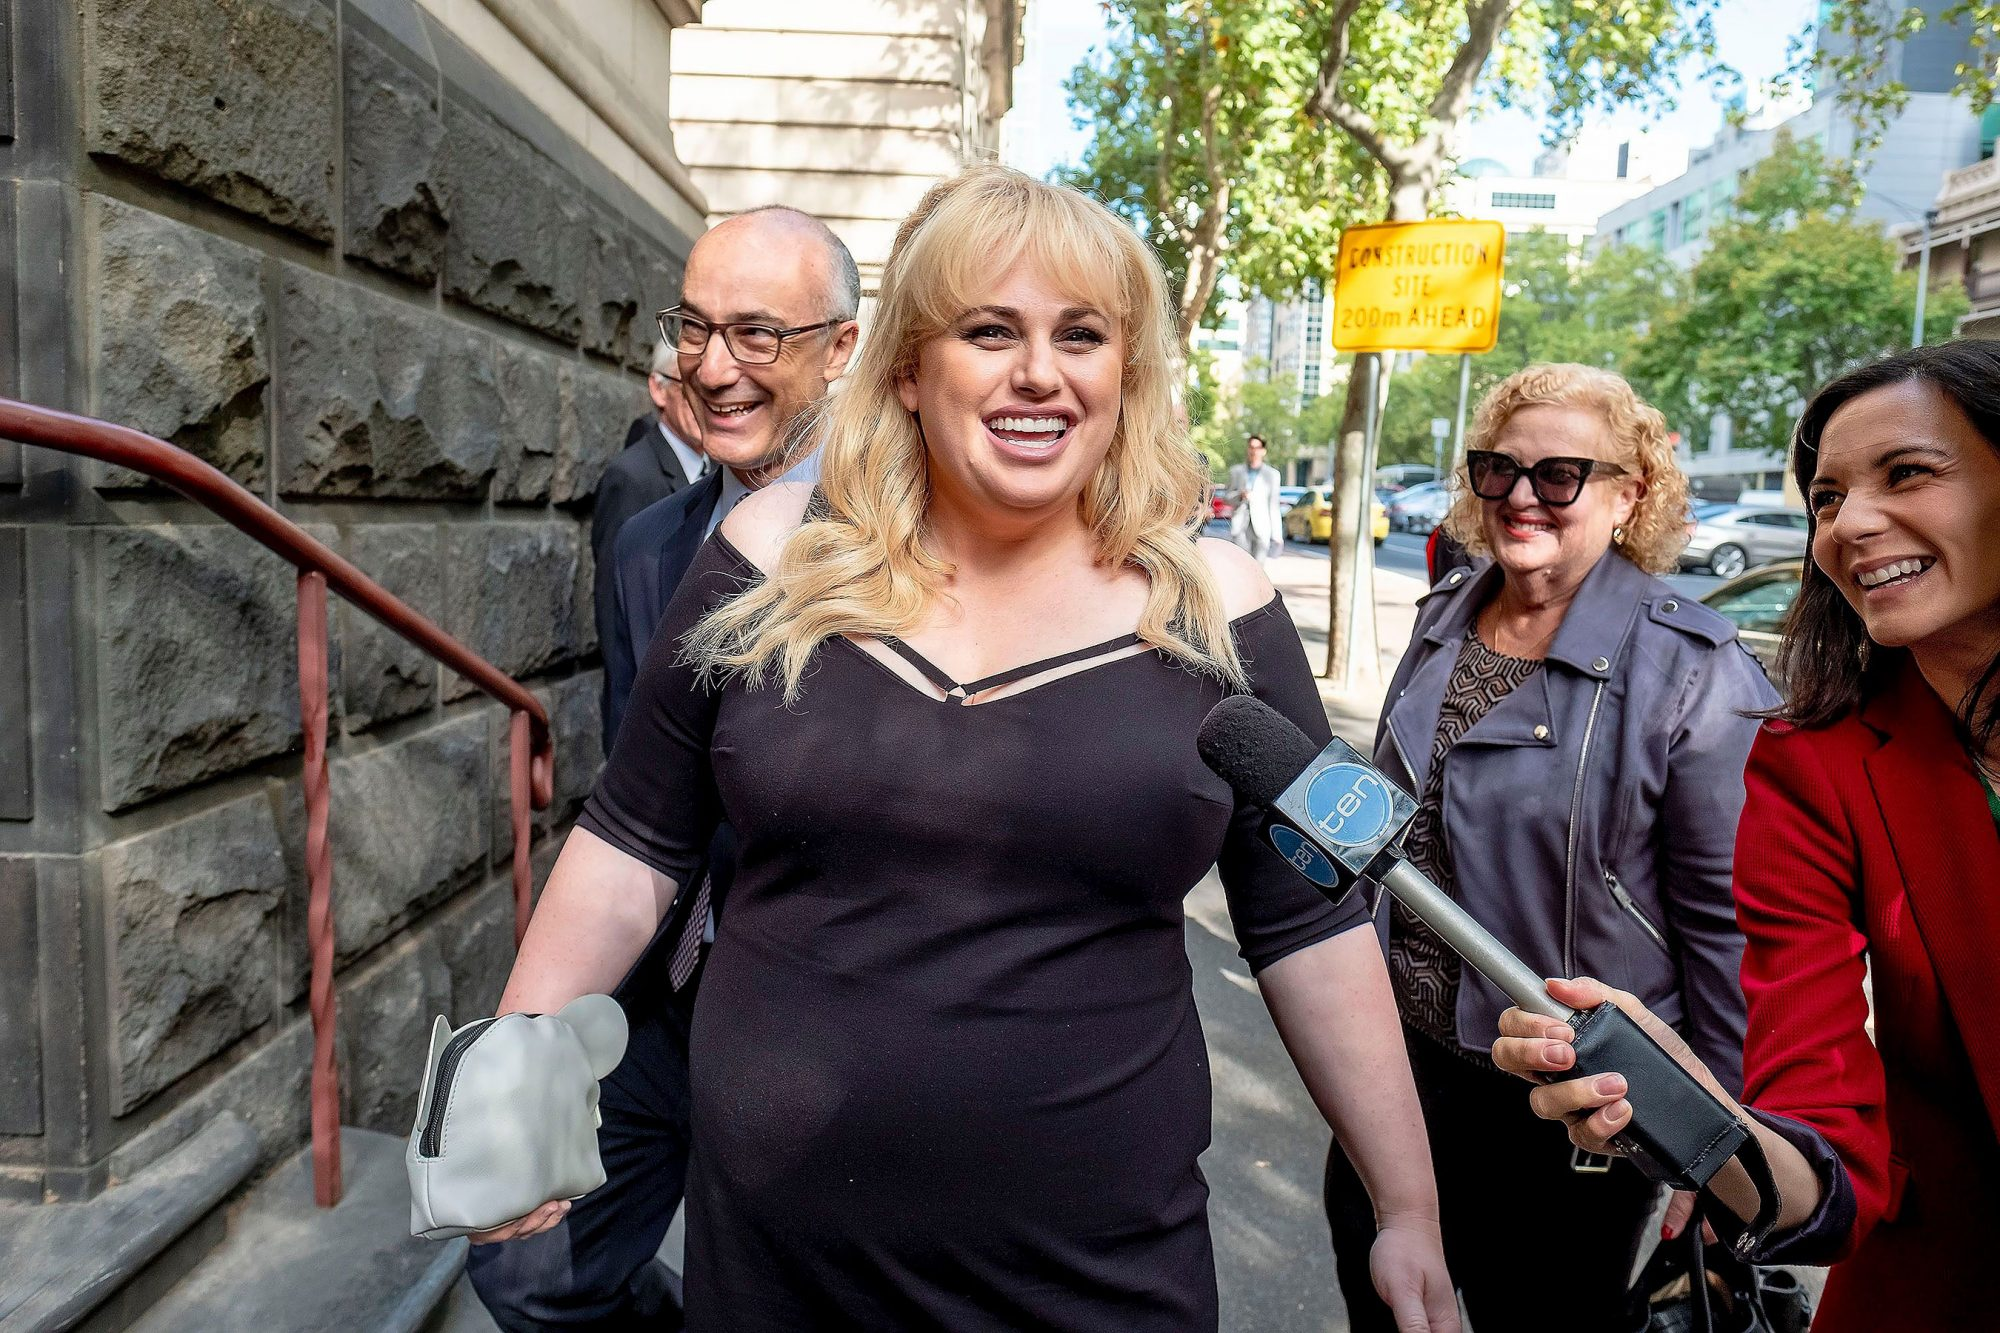 Australian actress Rebel Wilson's defamation case, Melbourne, Australia - 19 Apr 2018